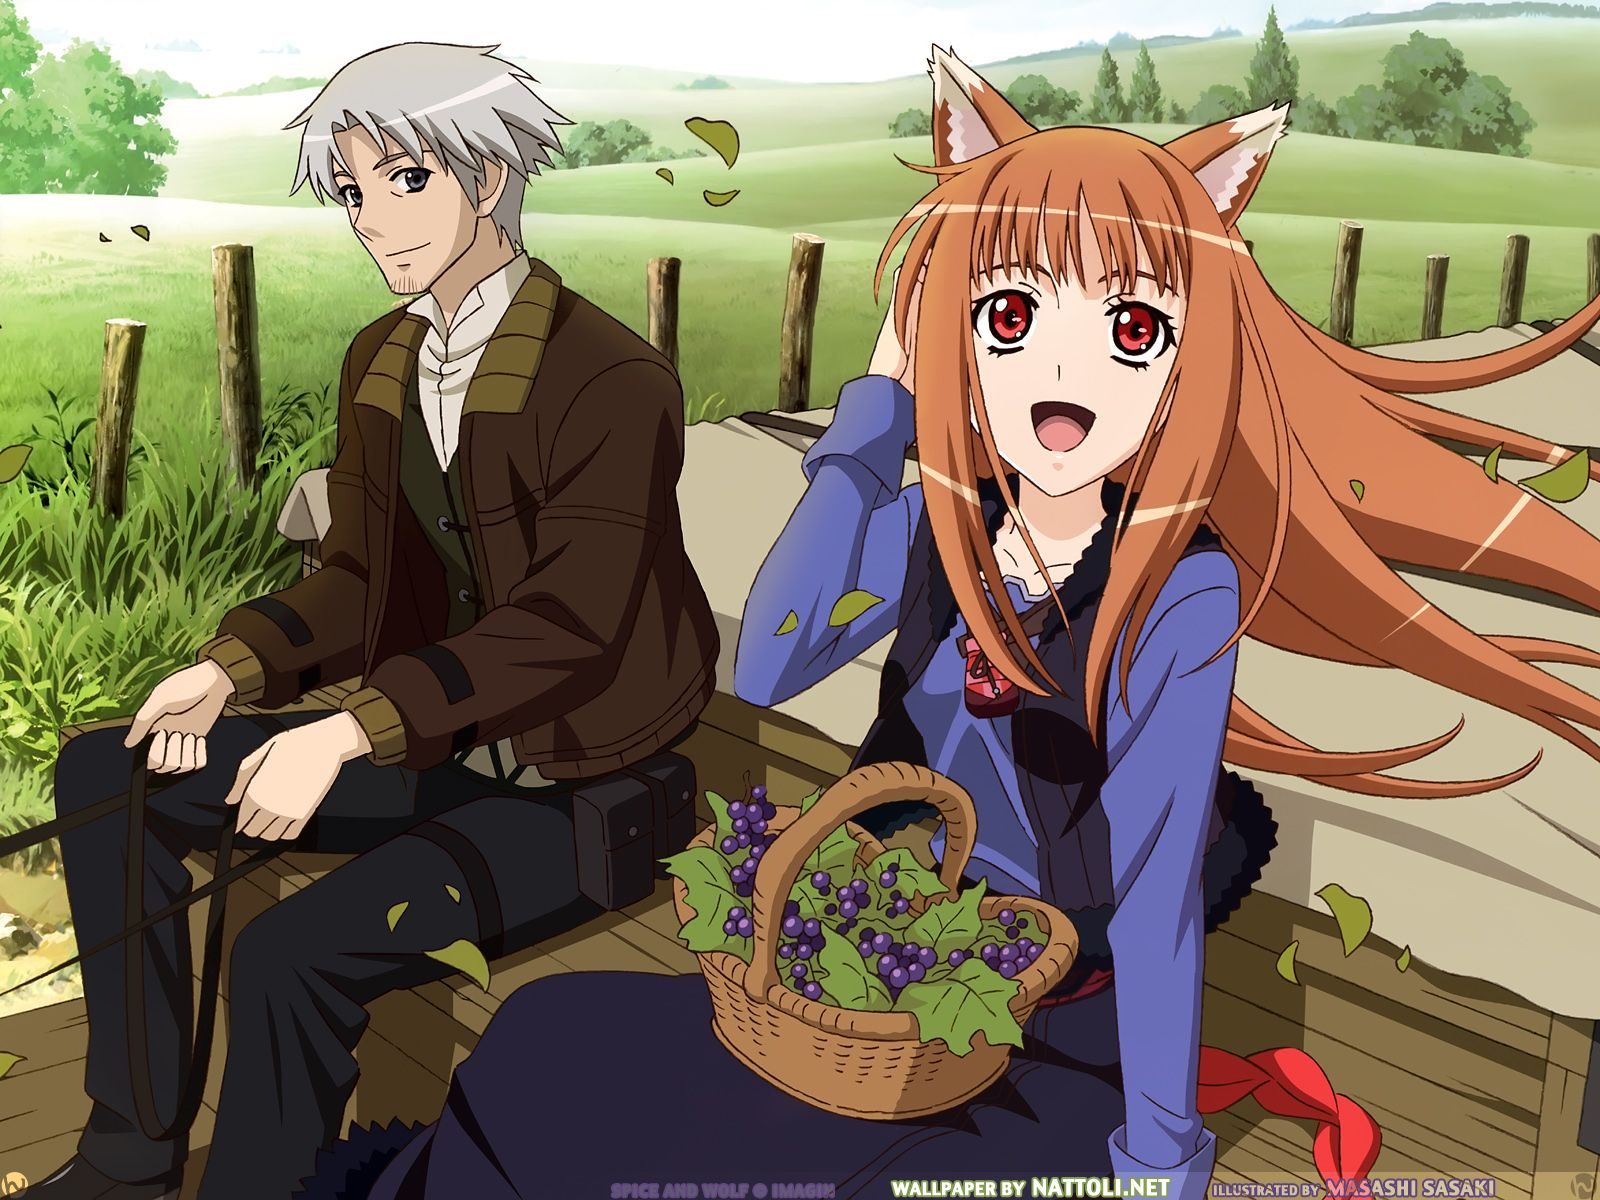 But this anime is really similar to Spice And Wolf, that anime was all about international trade and currency speculation. Oh yes, export/import business.